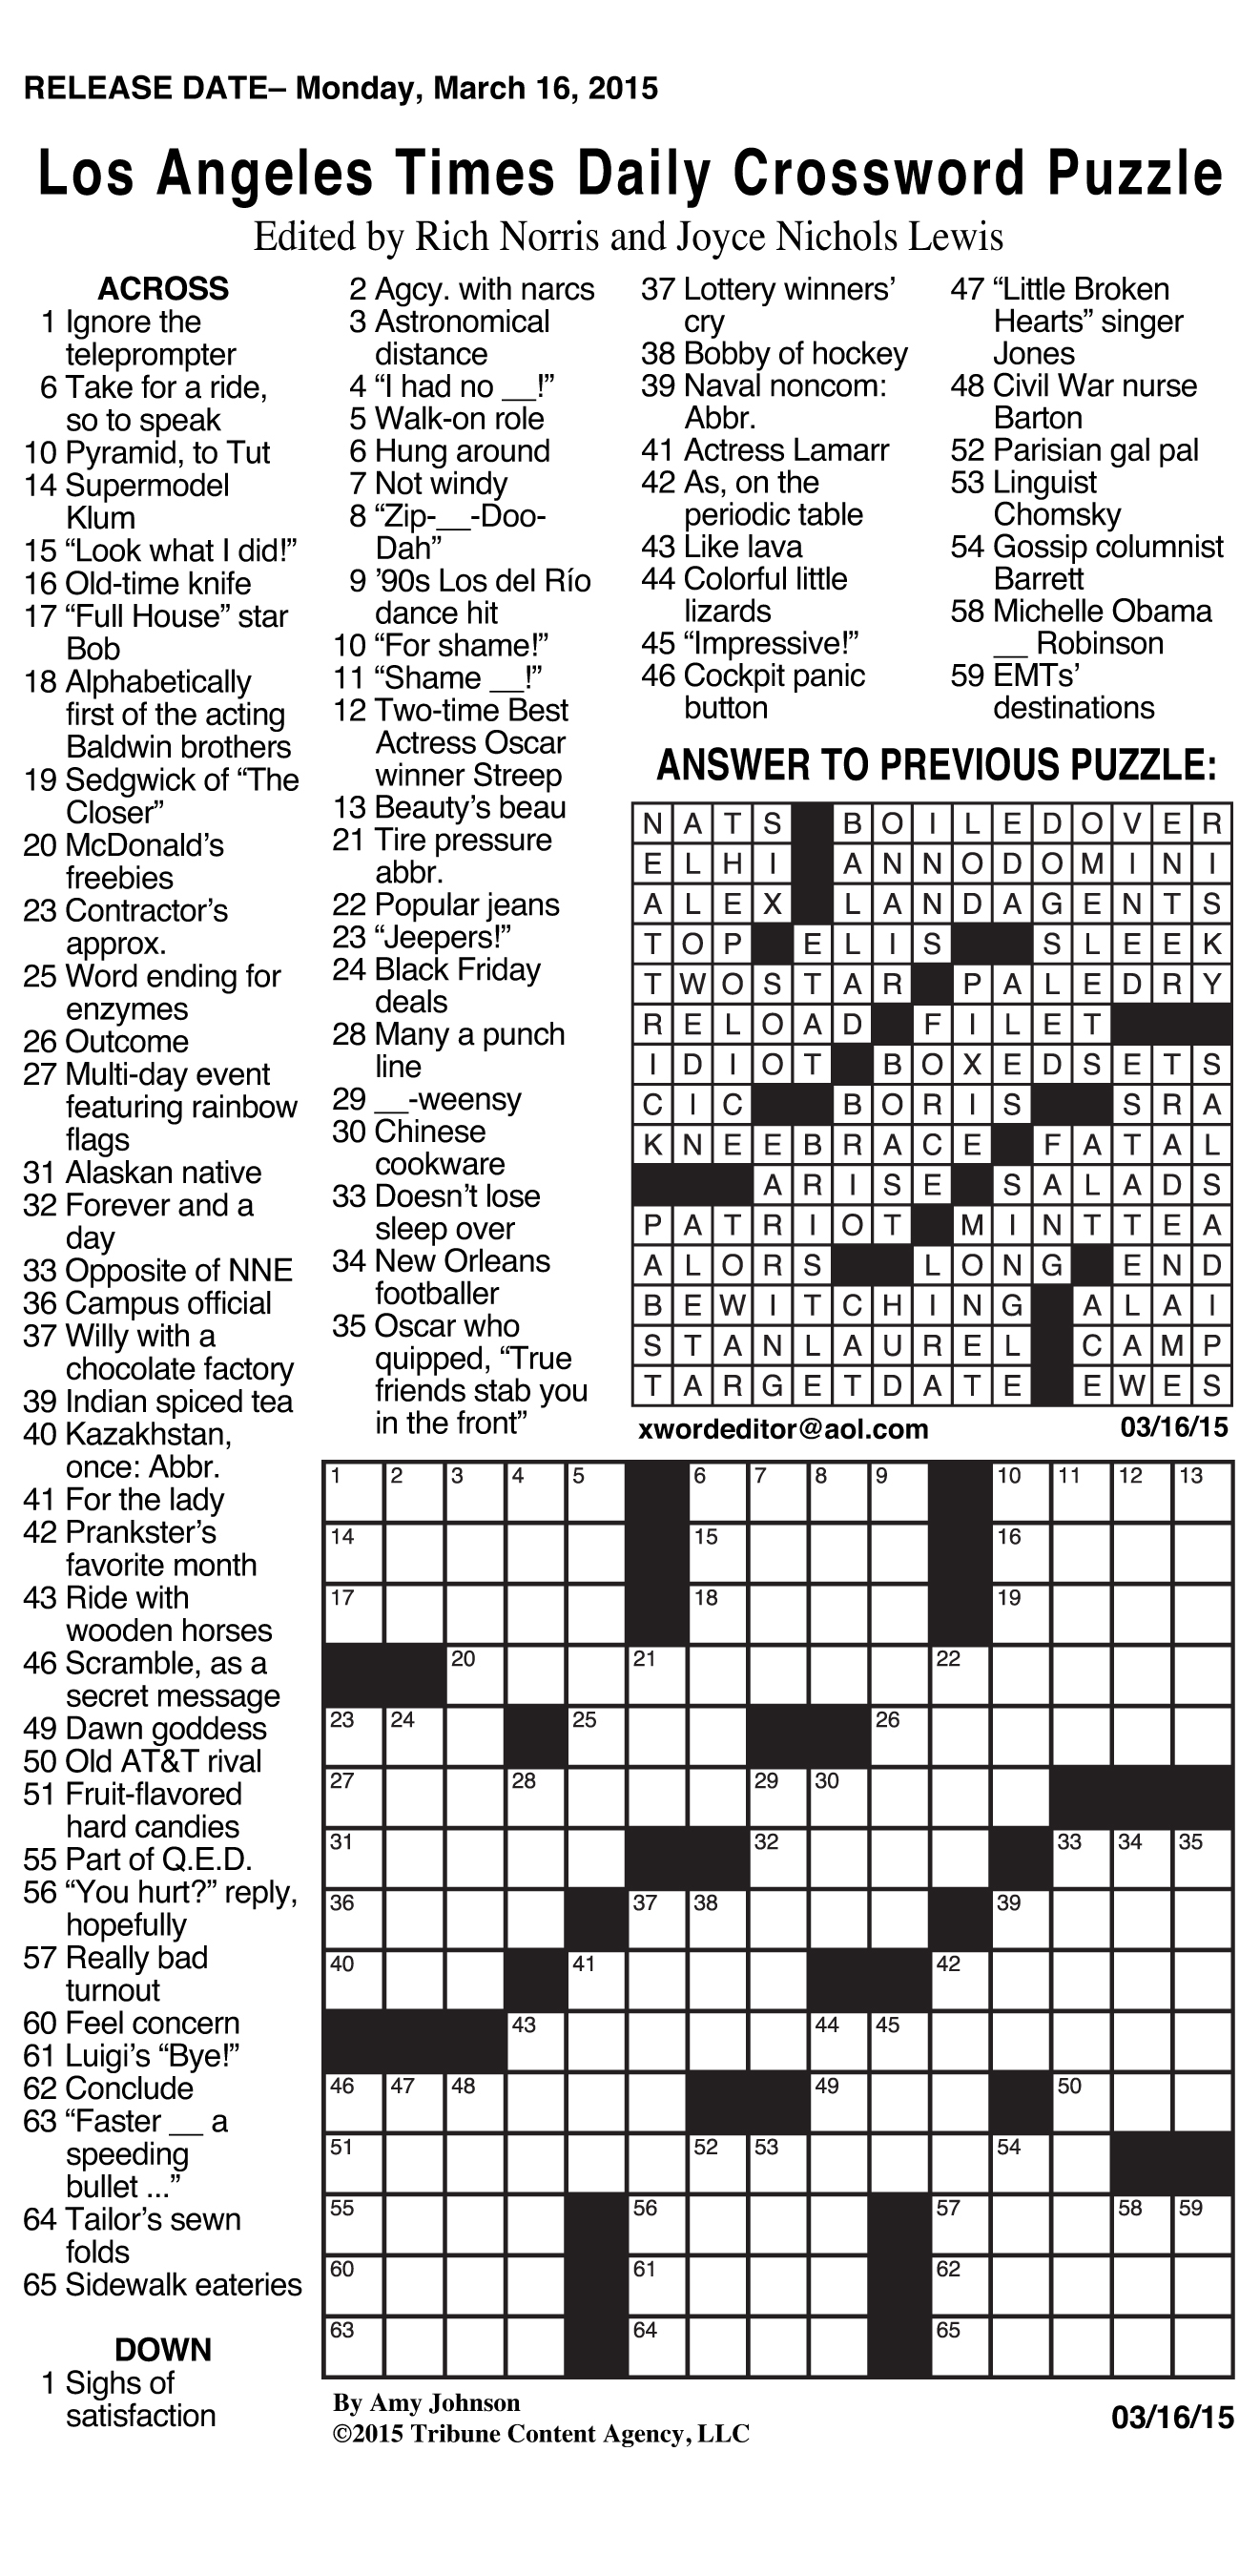 Sample Of Los Angeles Times Daily Crossword Puzzle | Tribune Content - Printable Newspaper Puzzles